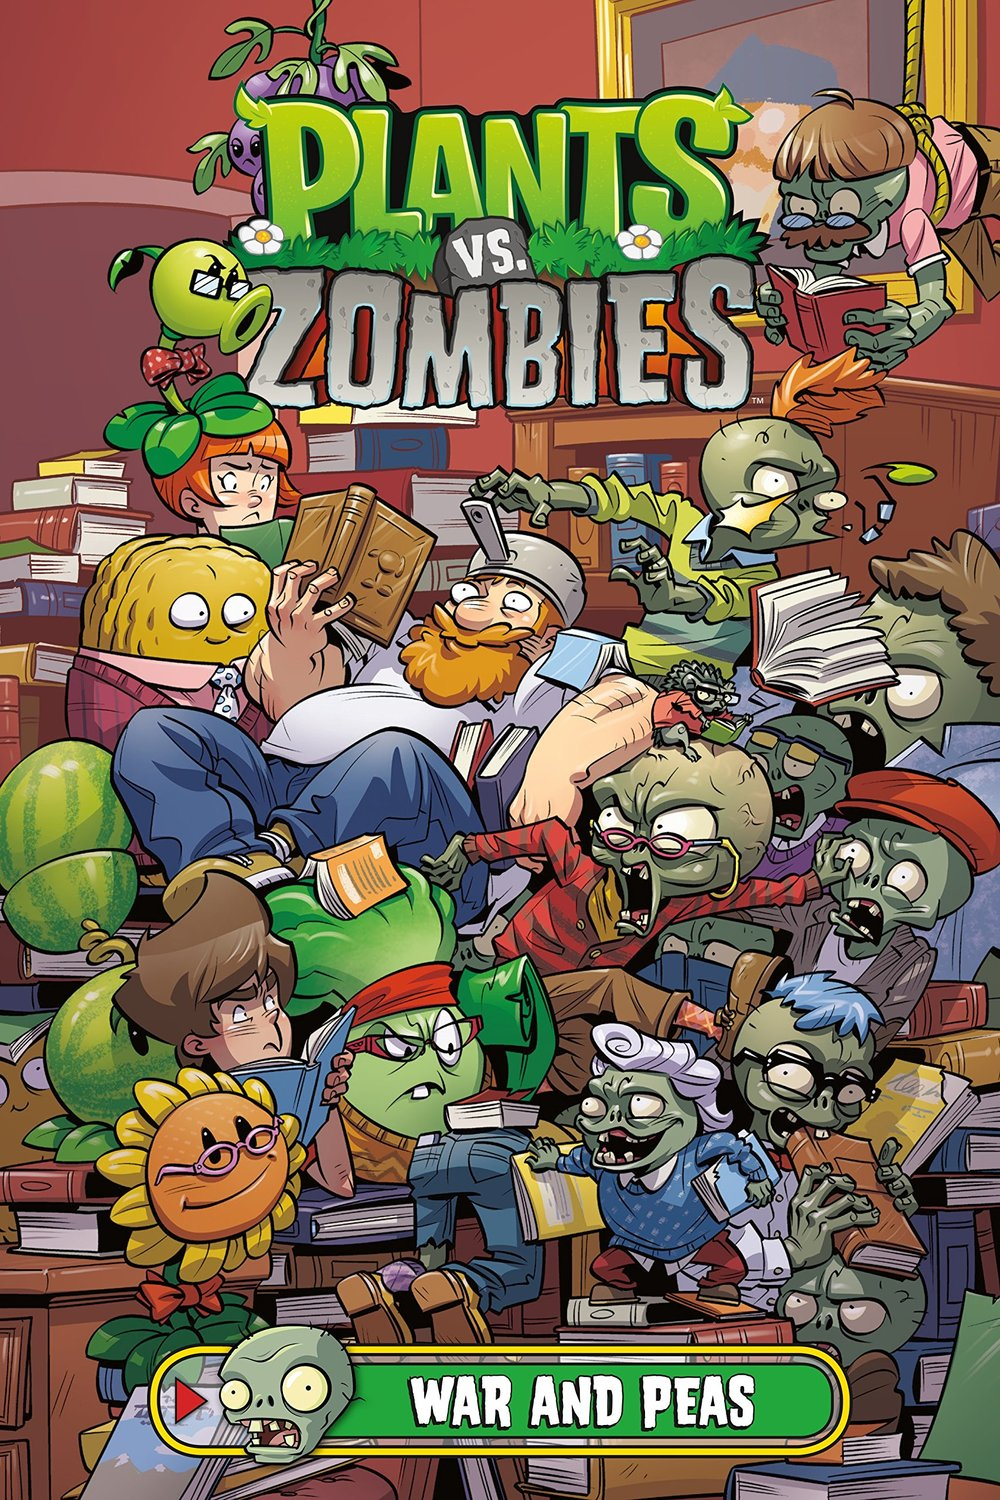 Plants vs Zombies: War and Peas